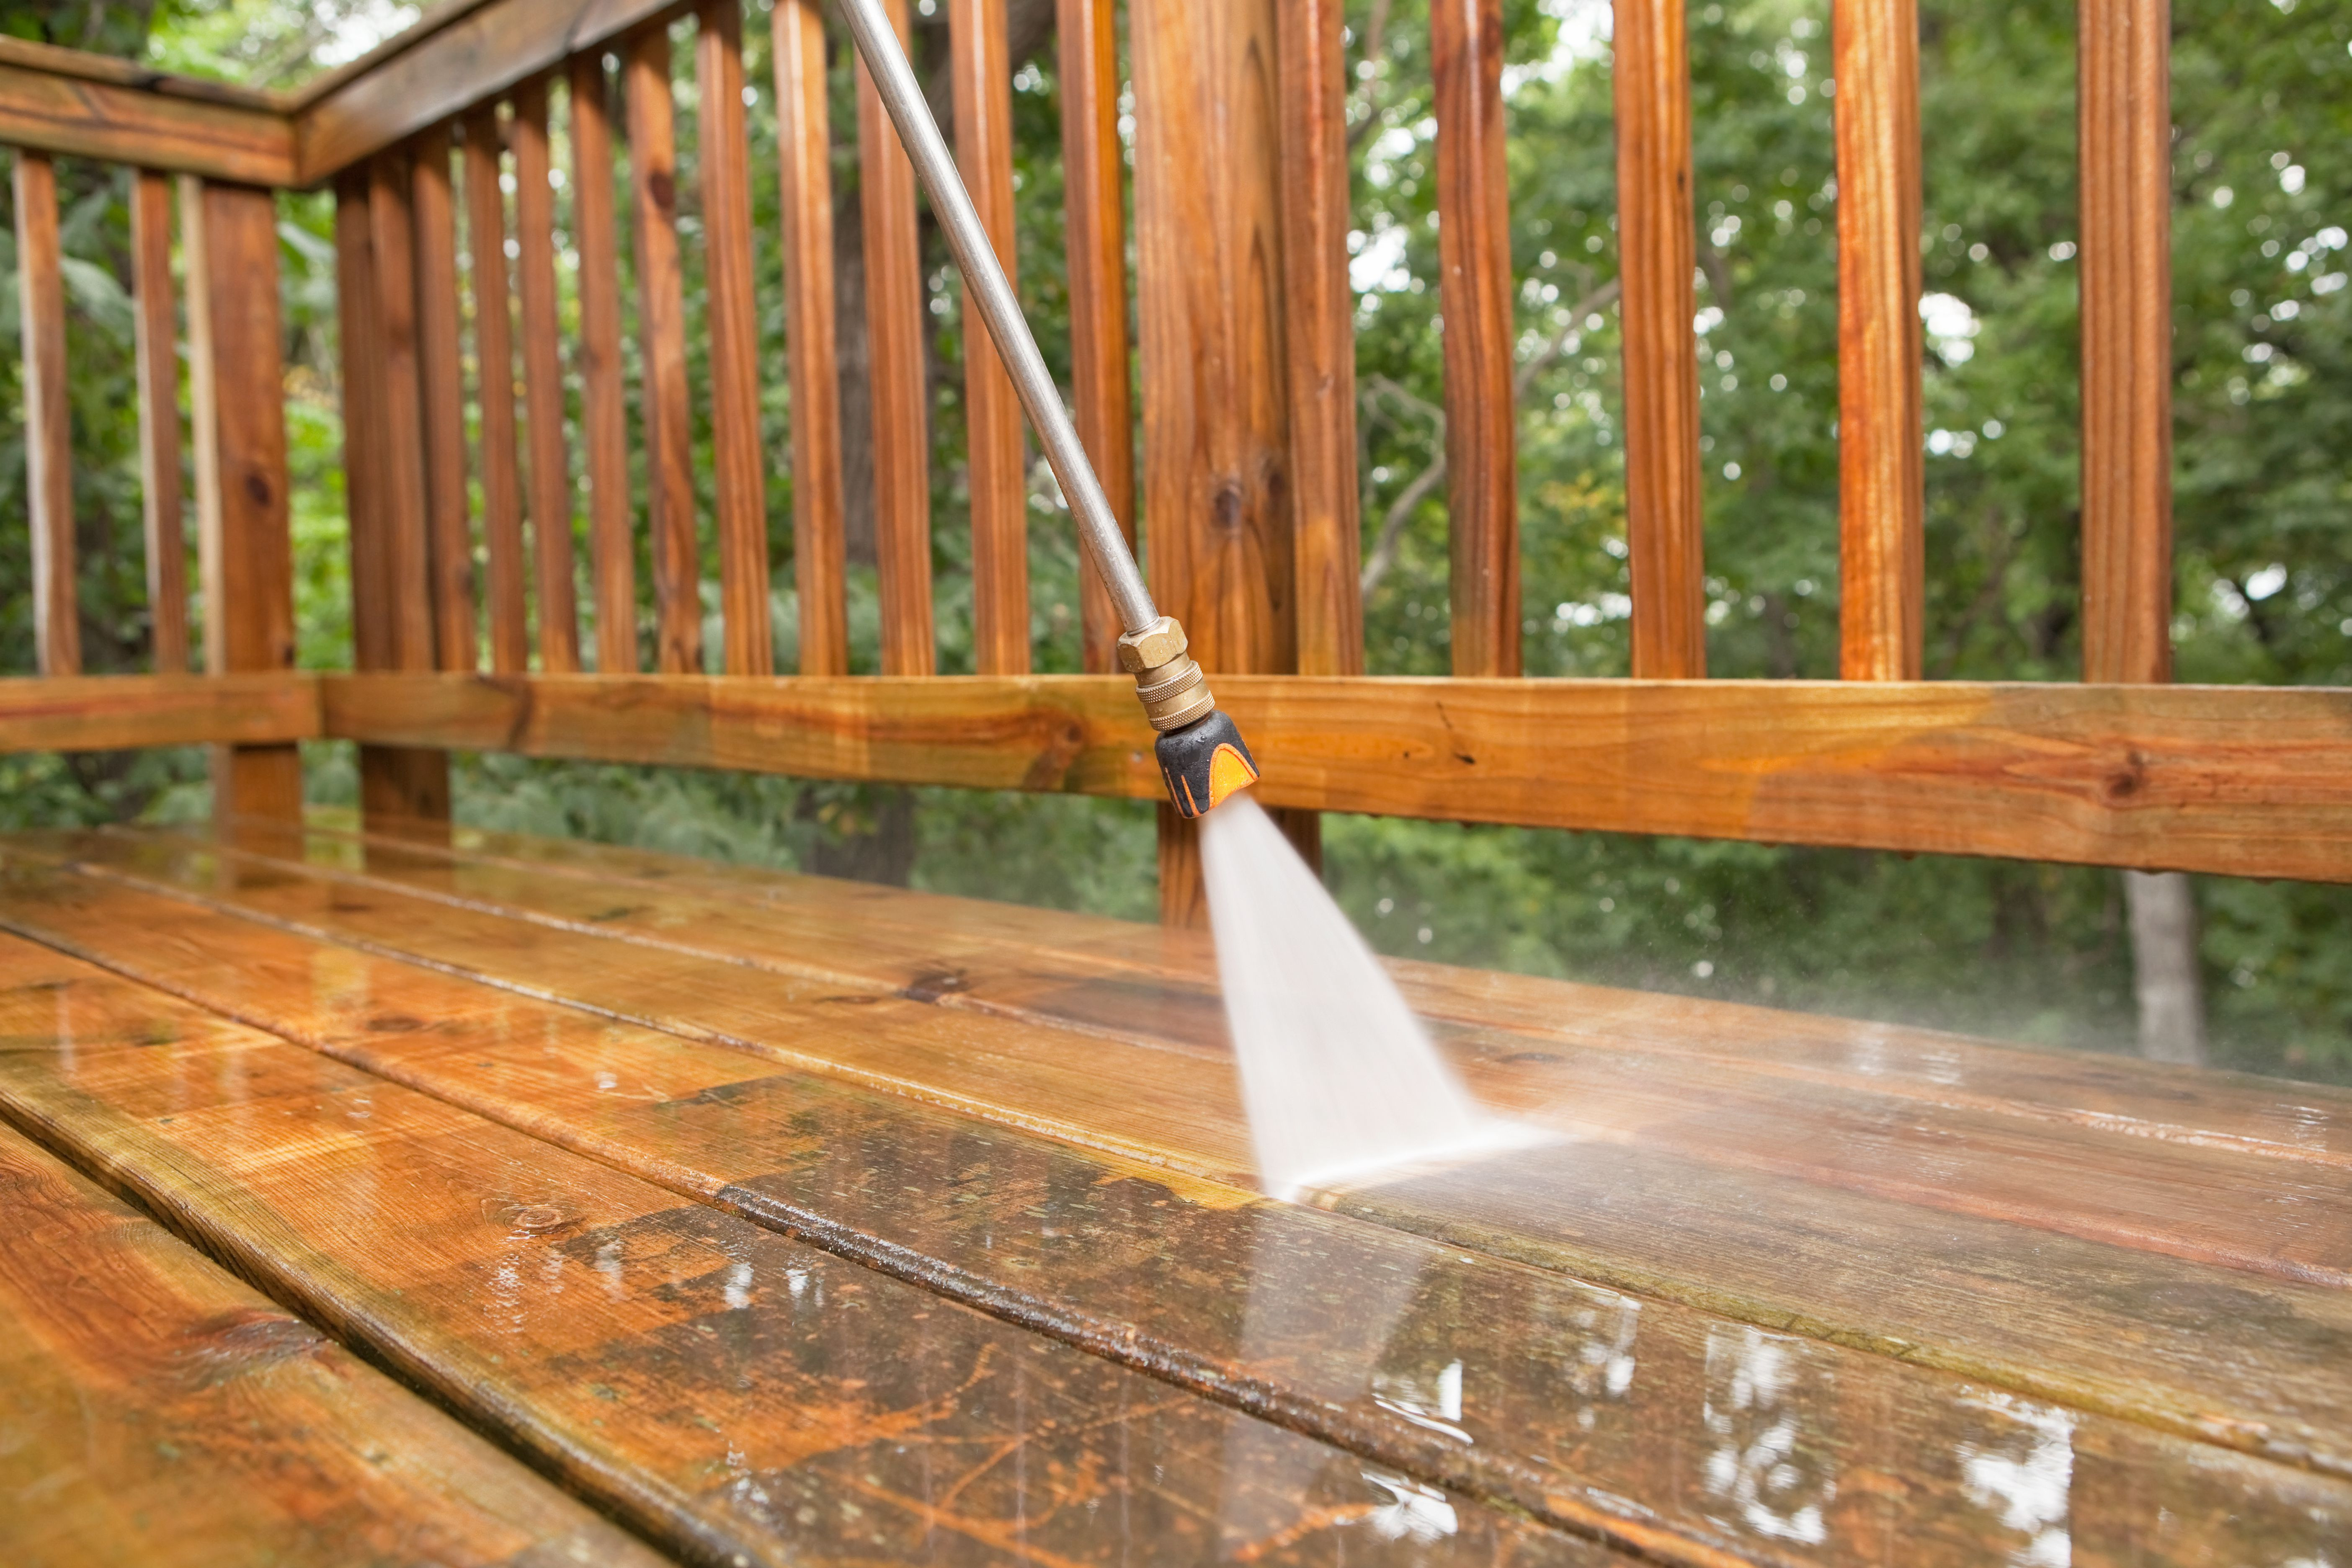 hardwood floor refinishing windsor of refinishing a wood deck an overview throughout pressure washer cleaning a weathered deck 171356261 5810fd5d5f9b58564c69c9c6